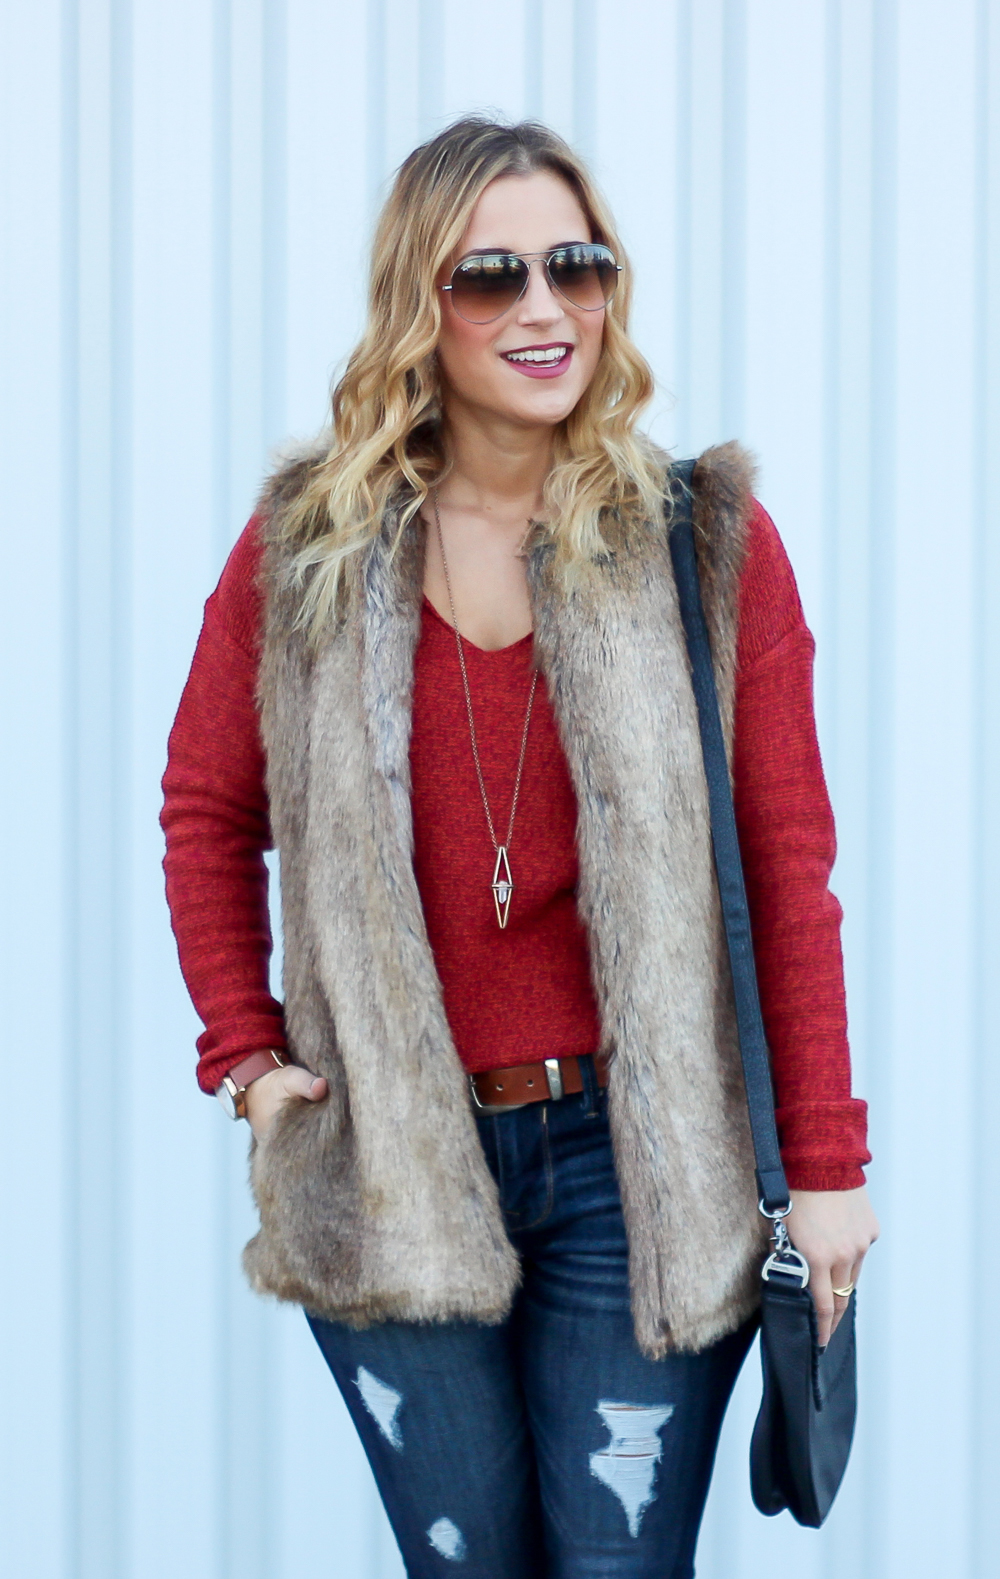 Old Navy V-Neck Sweater, Faux fur vest from Zara and Ripped Jeans from Express